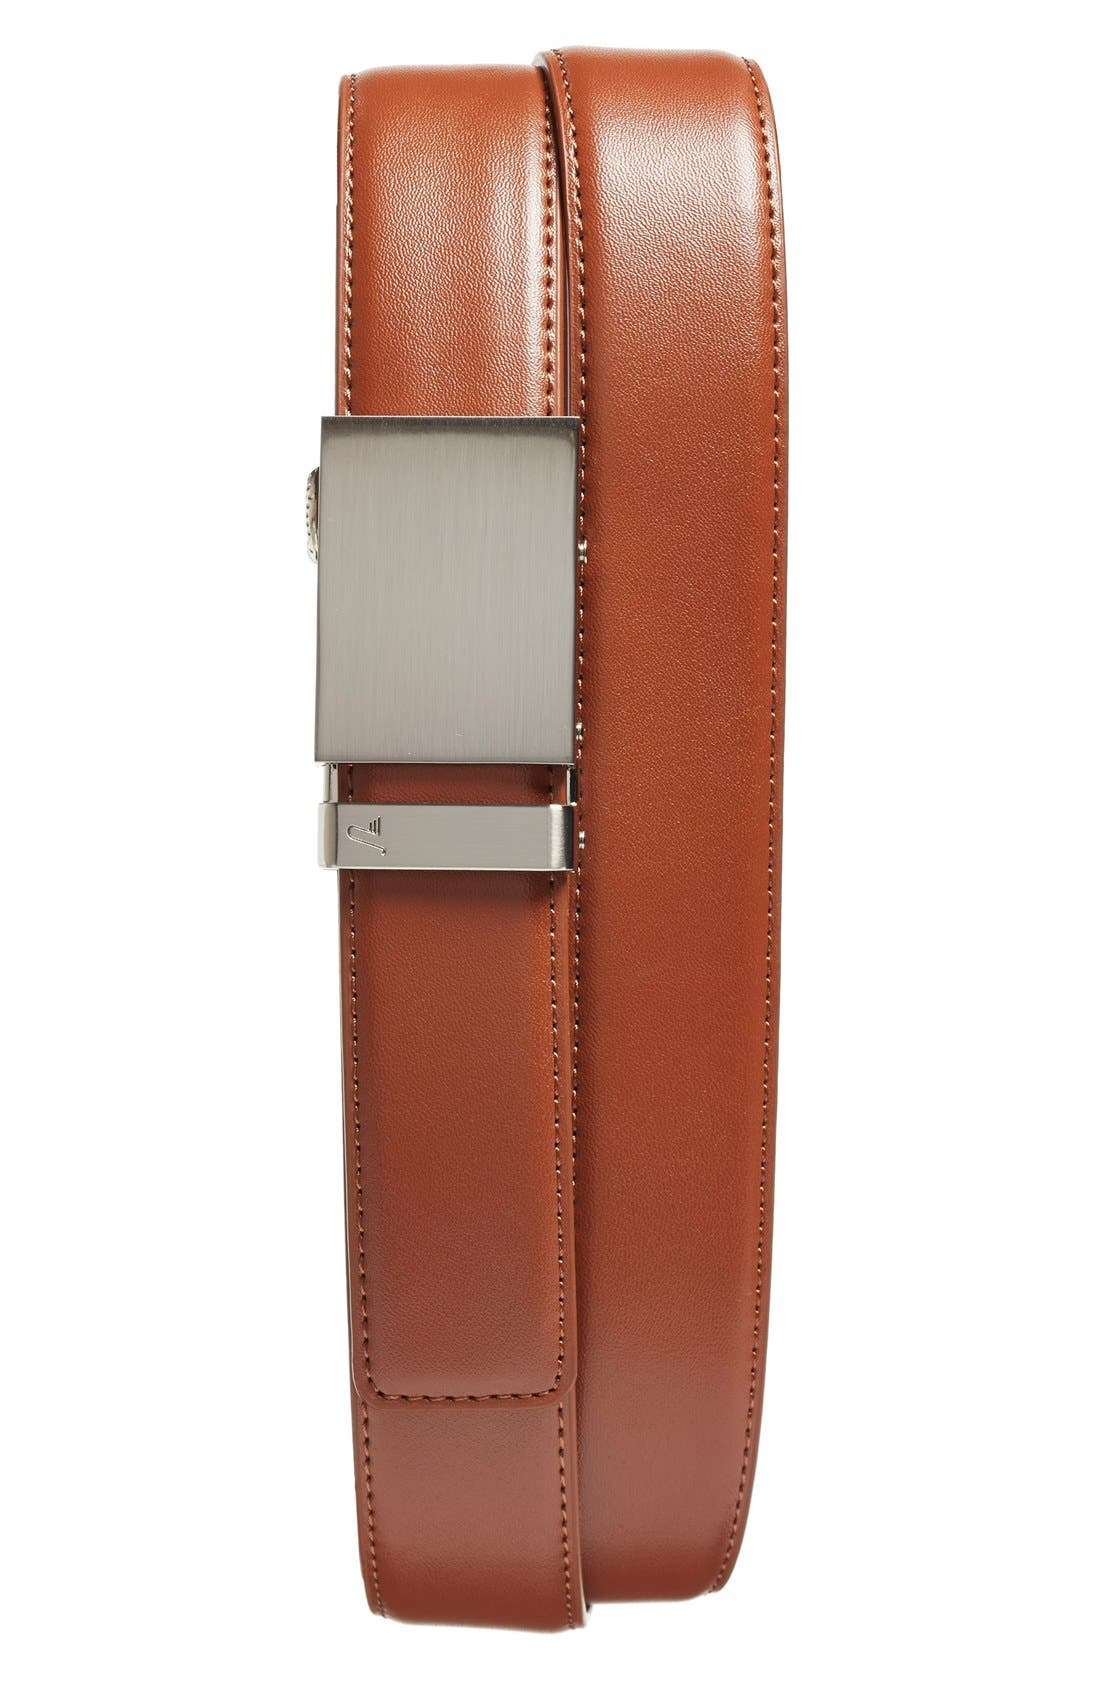 'Steel' Leather Belt,                             Main thumbnail 1, color,                             Steel/ Saddle Brown